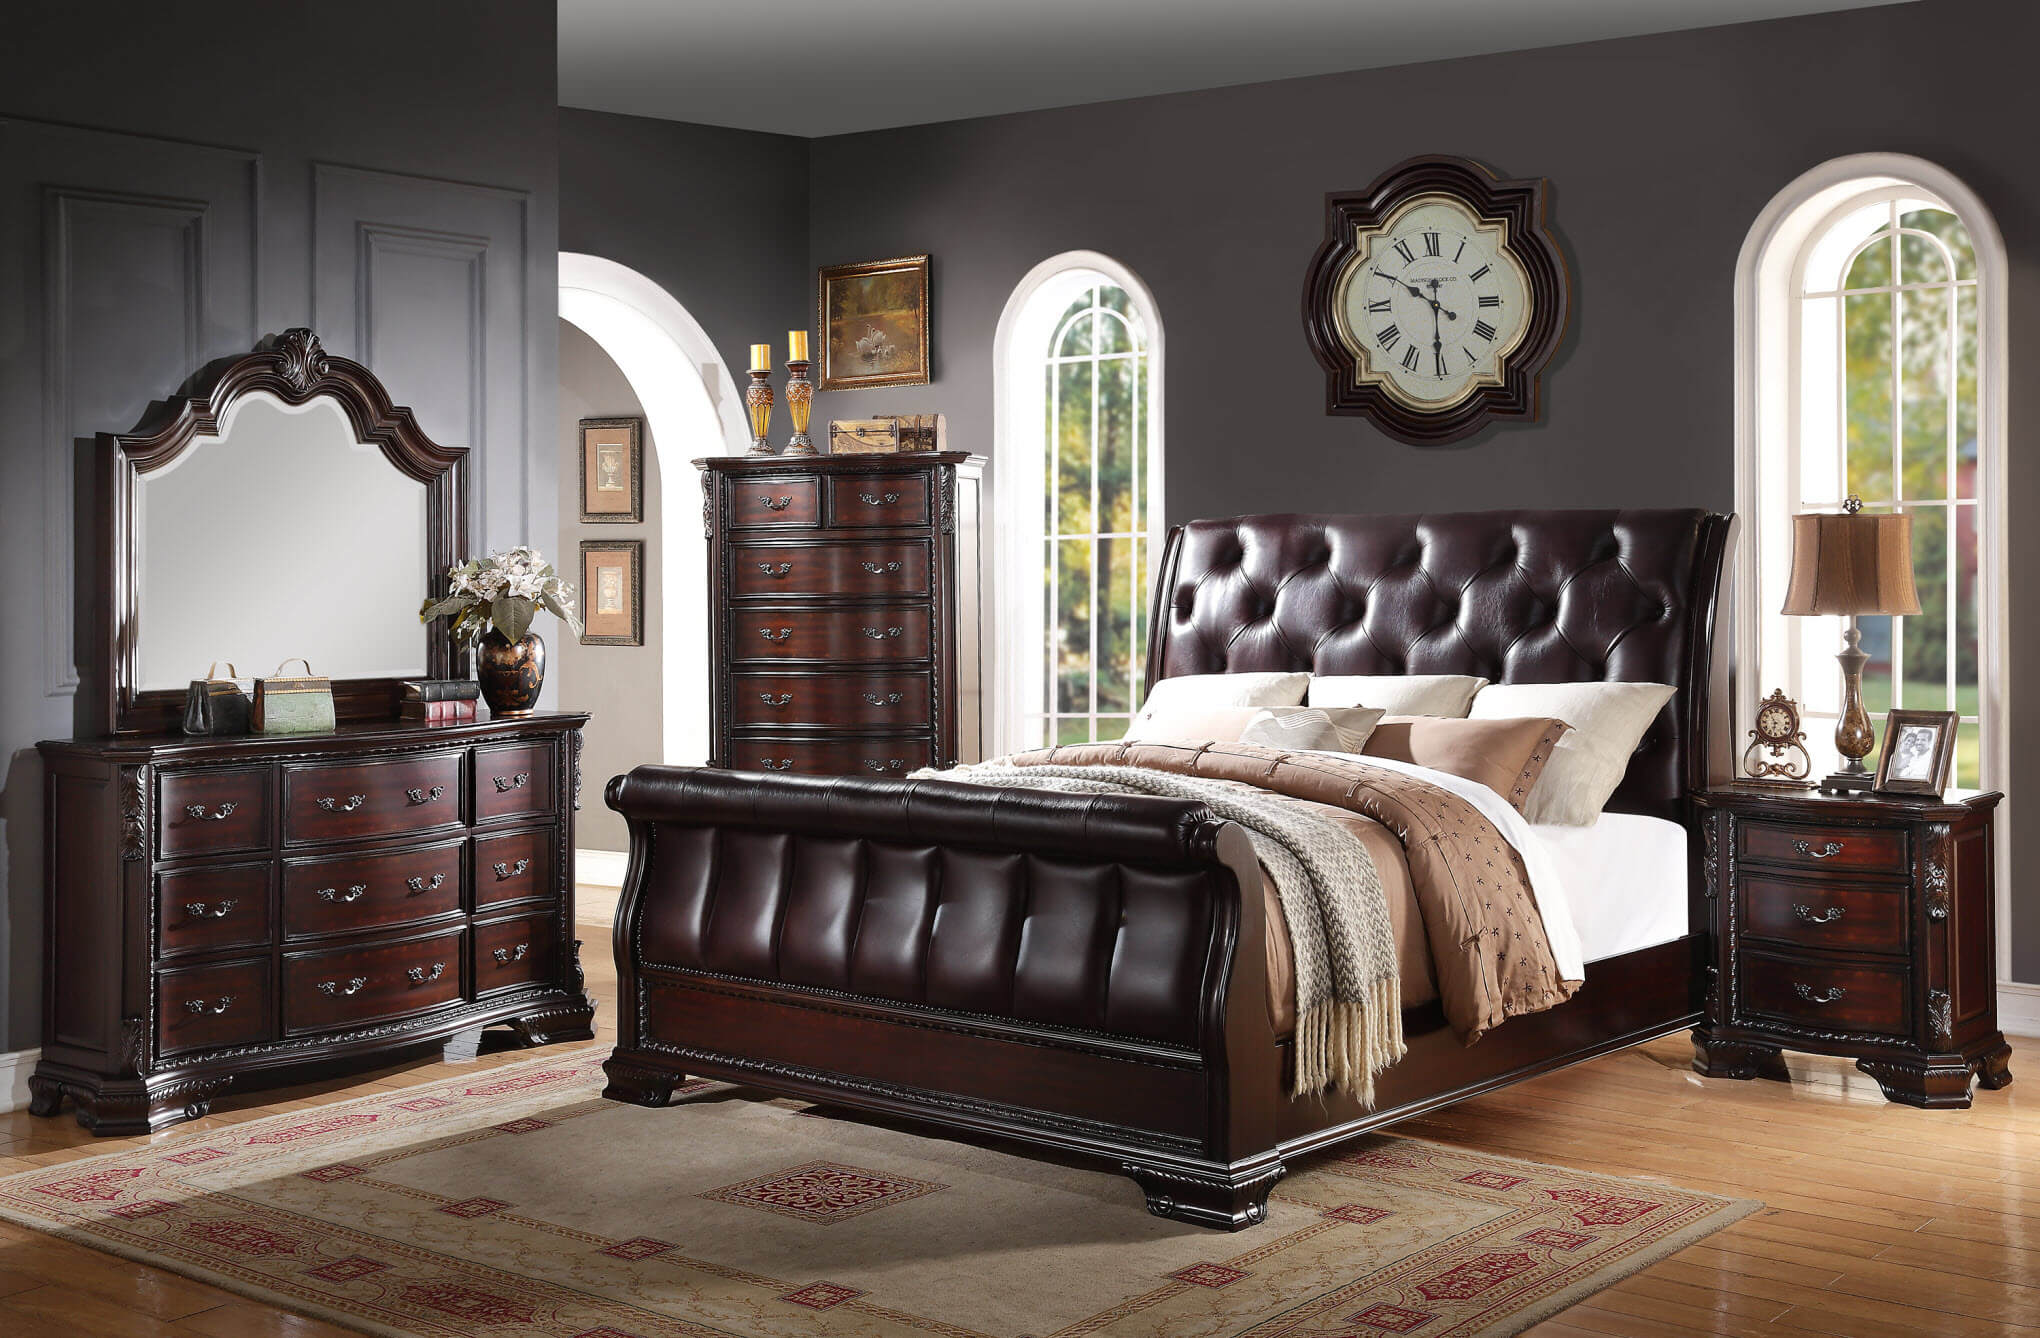 Sheffield Bedroom Set by Crown Mark | Bedroom Furniture Sets